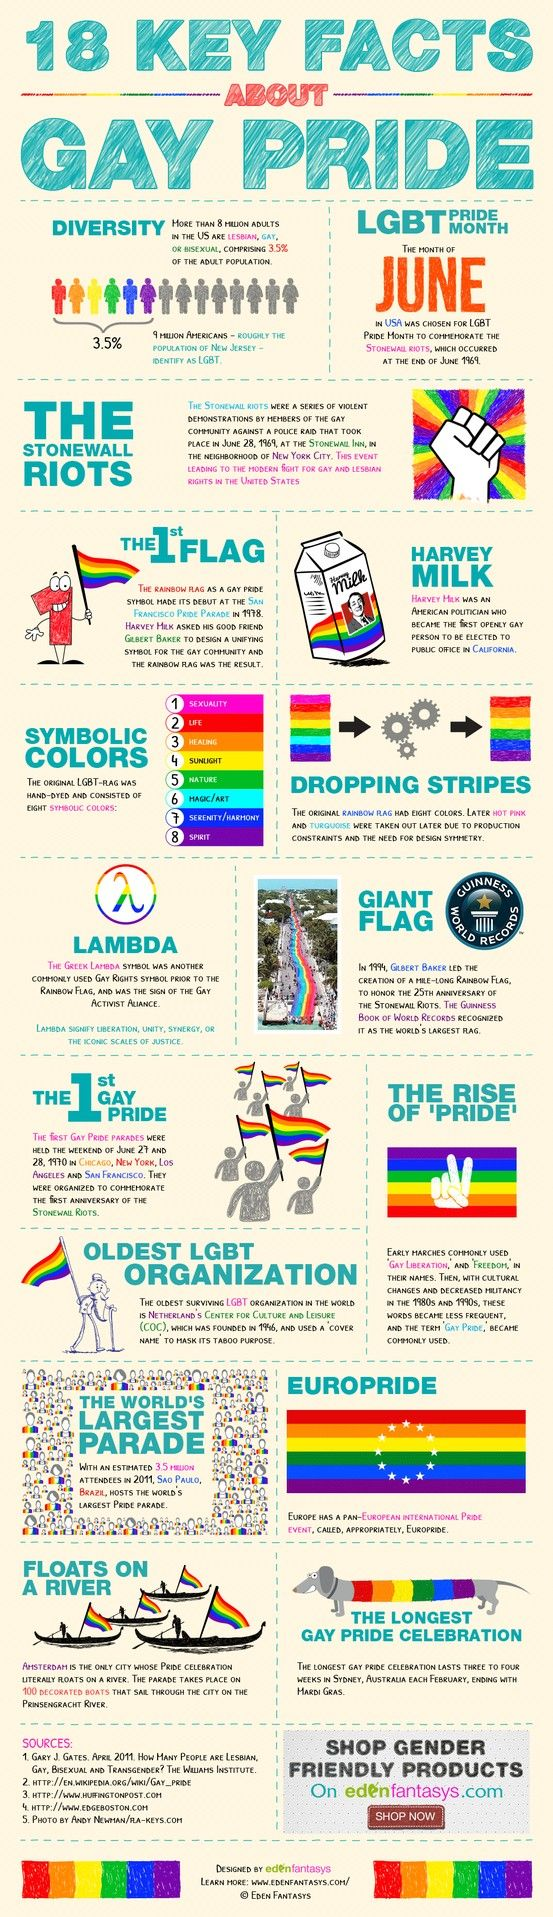 18 key facts about gay pride